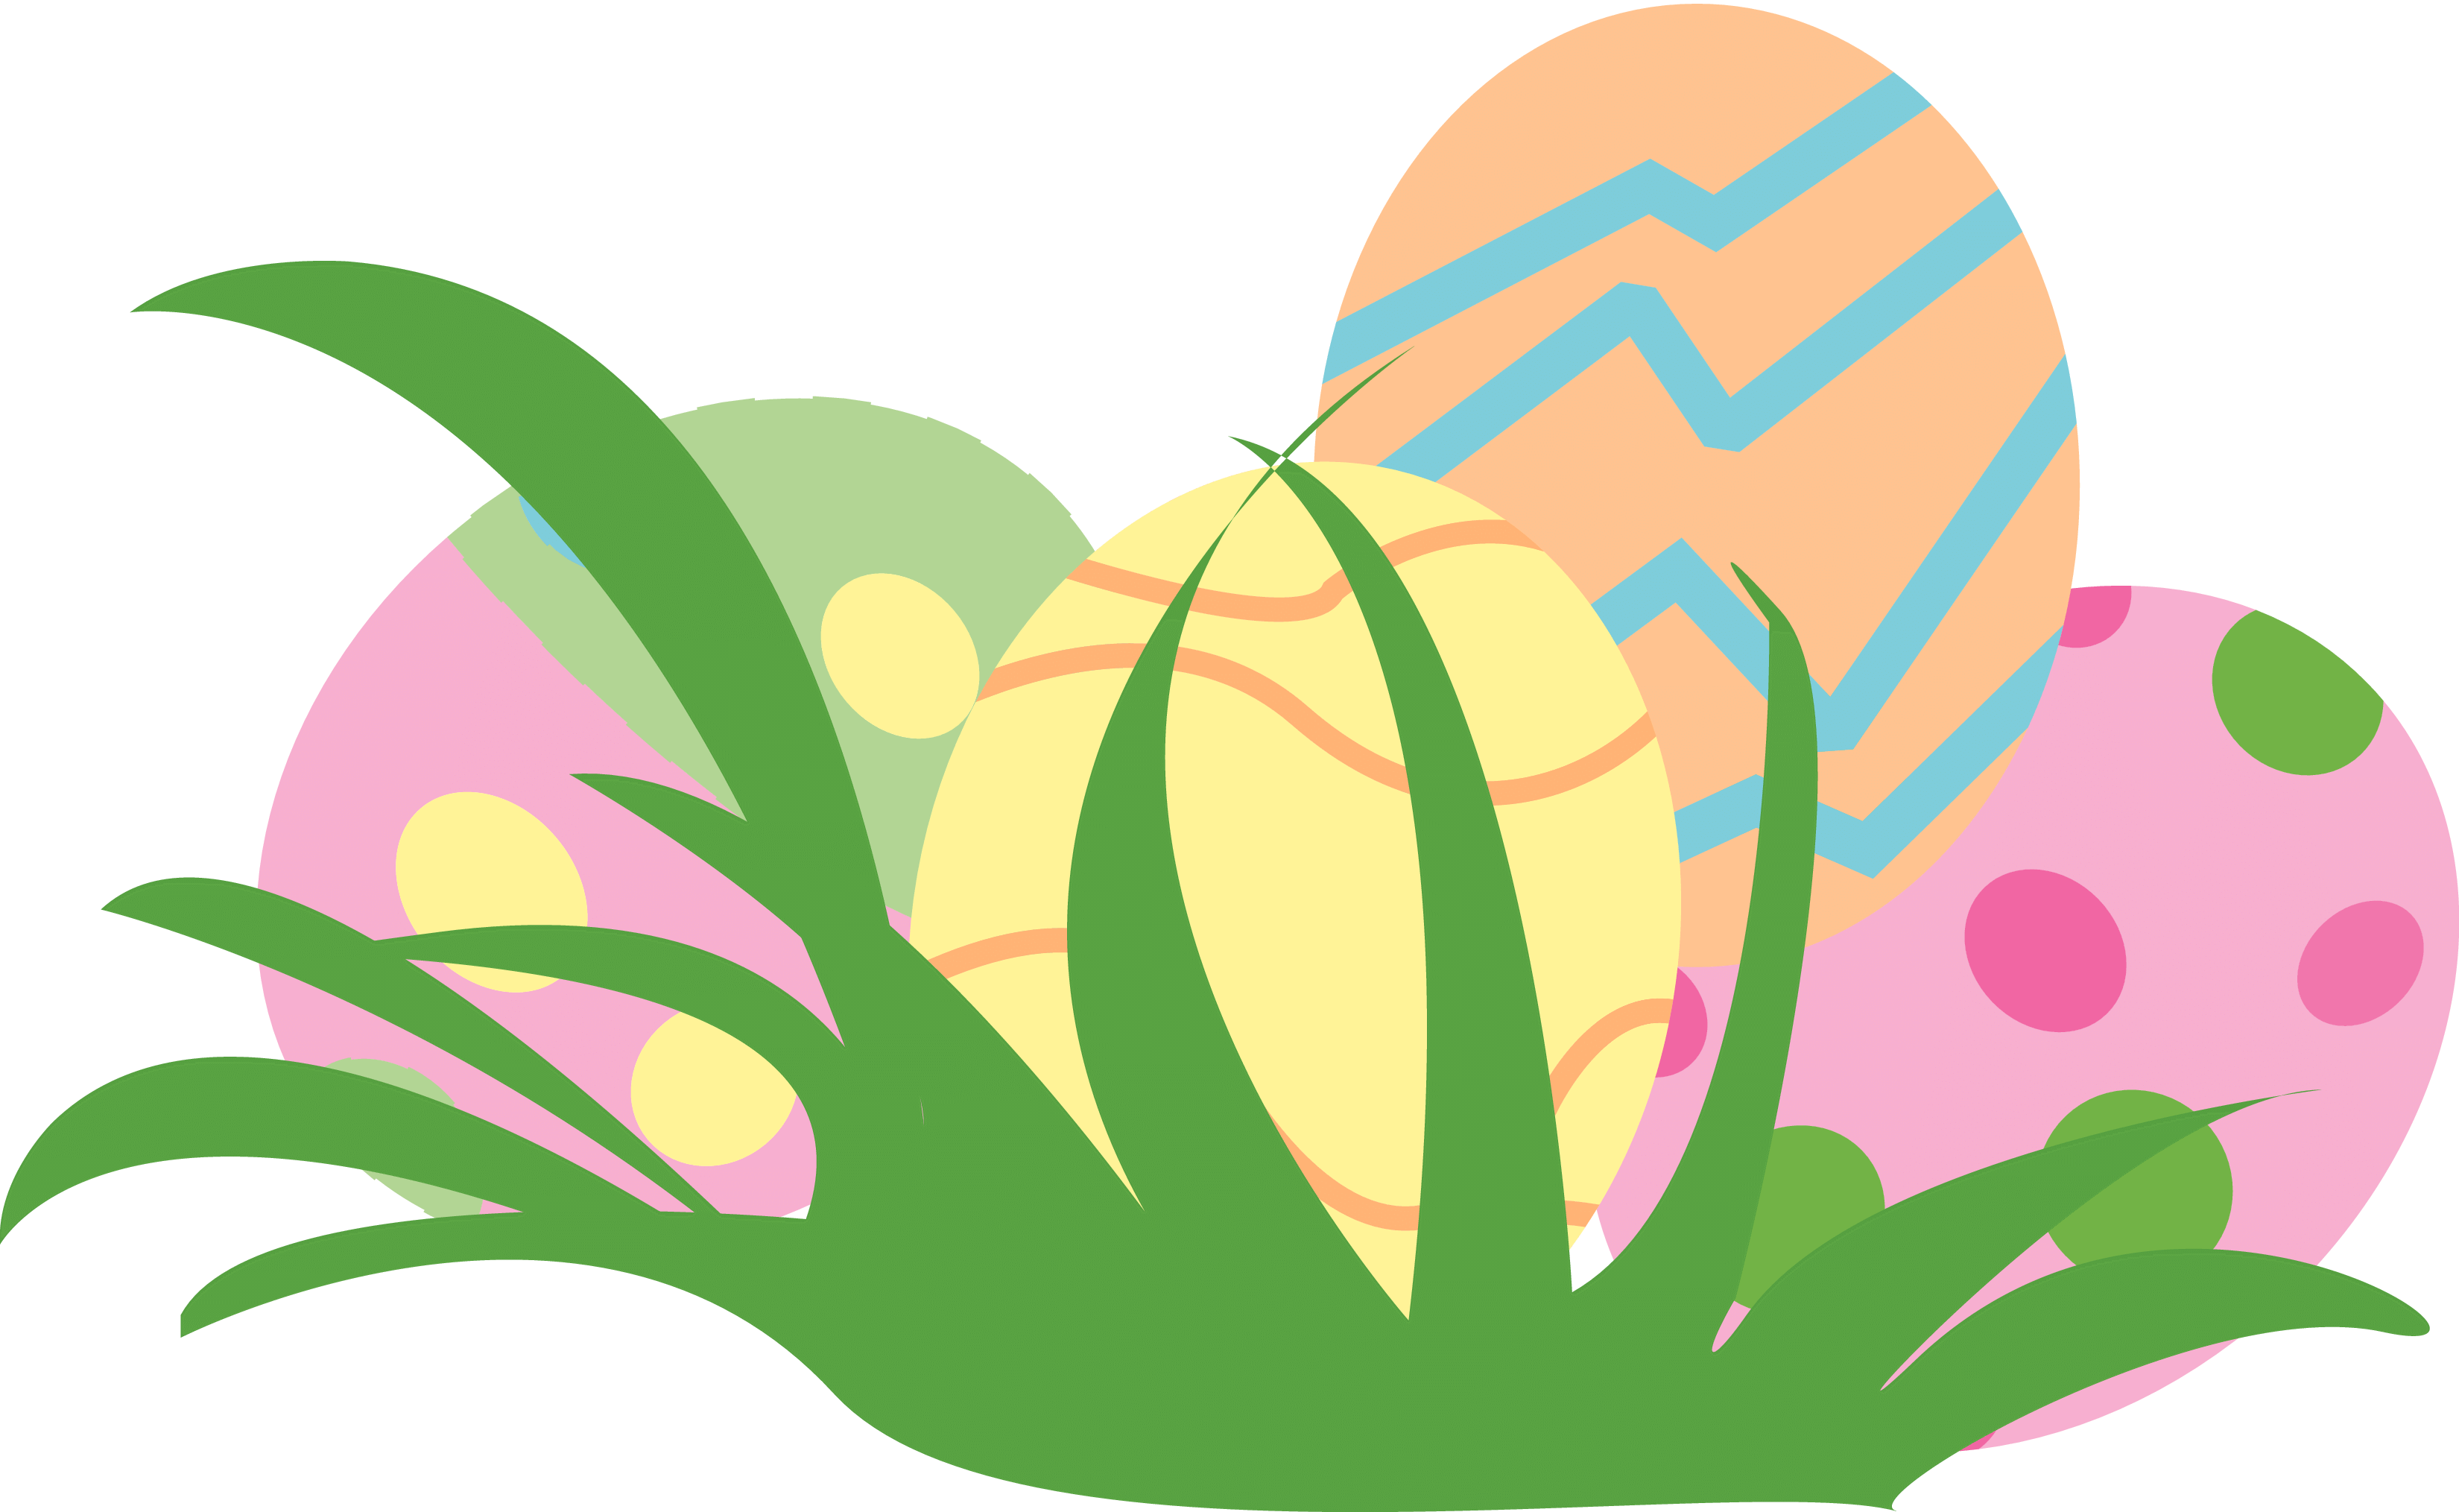 Word cliparts zone easter. Hunting clipart hunting season